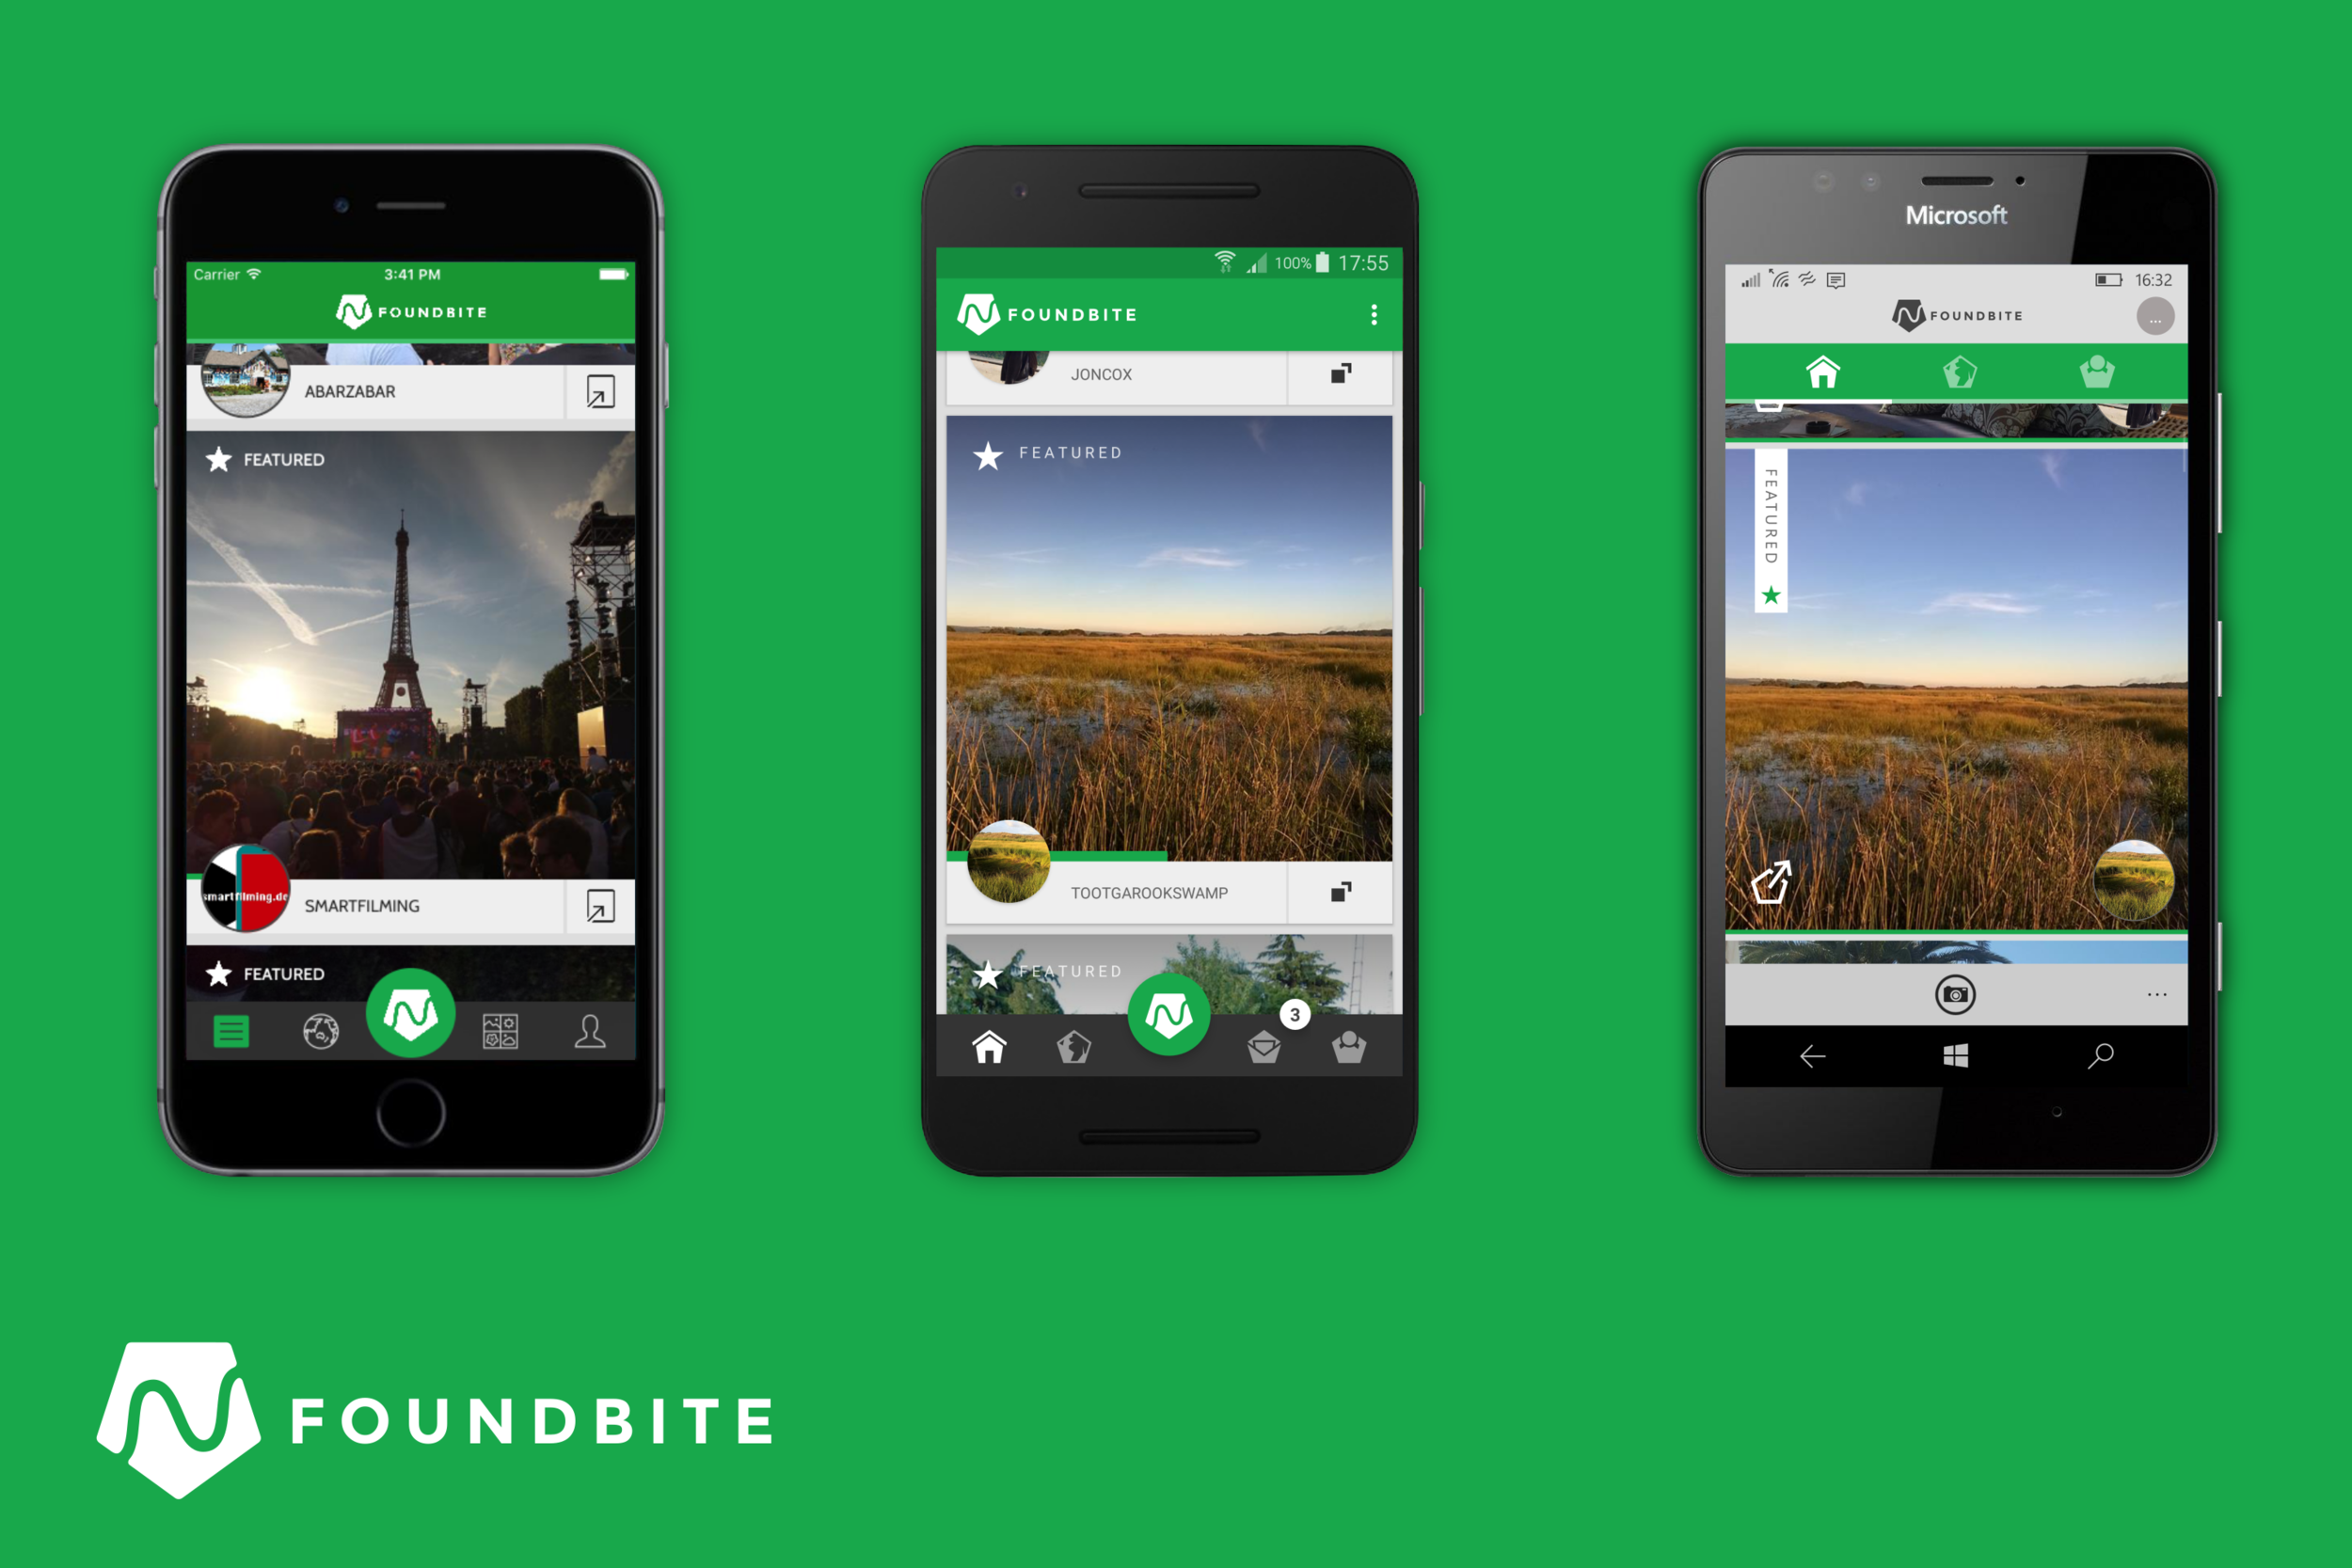 The Foundbite app running on Android, iOS and Windows Phone. Using Xamarin we were able to have a large amount of shared code. We also kept a similar user experience across all apps while keeping each in tune with the design patterns of each platform.